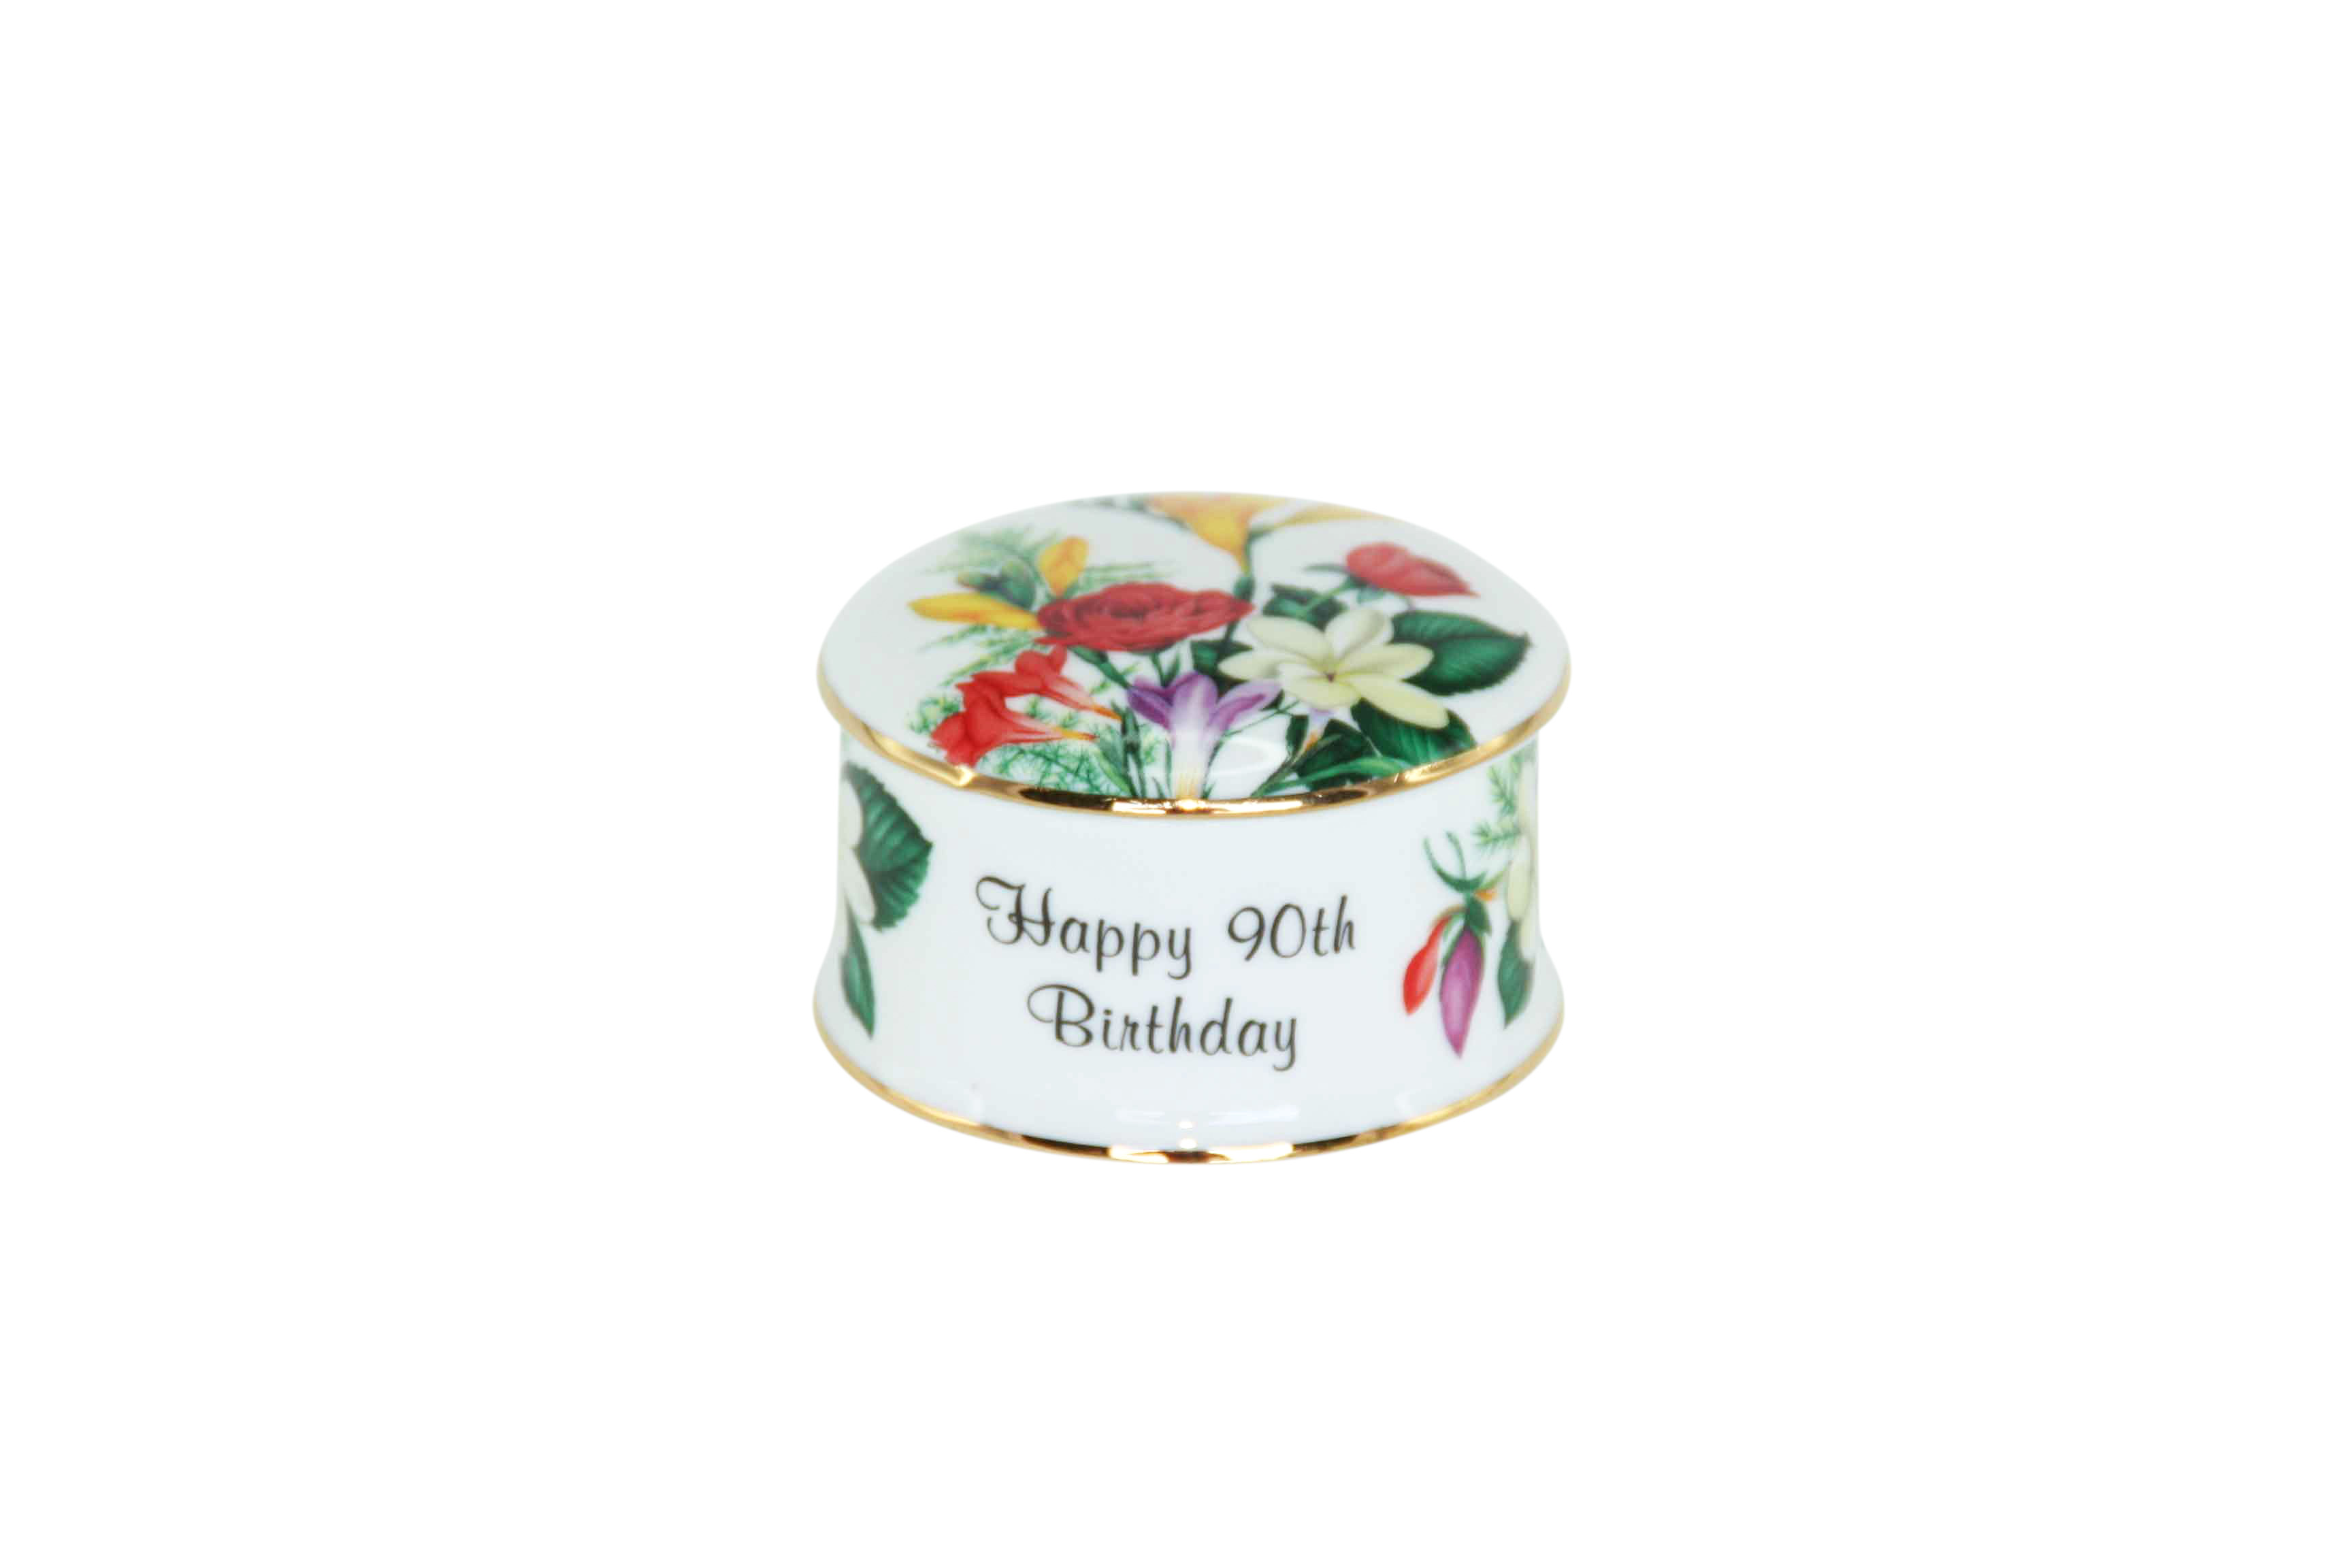 90th Birthday Trinket Box